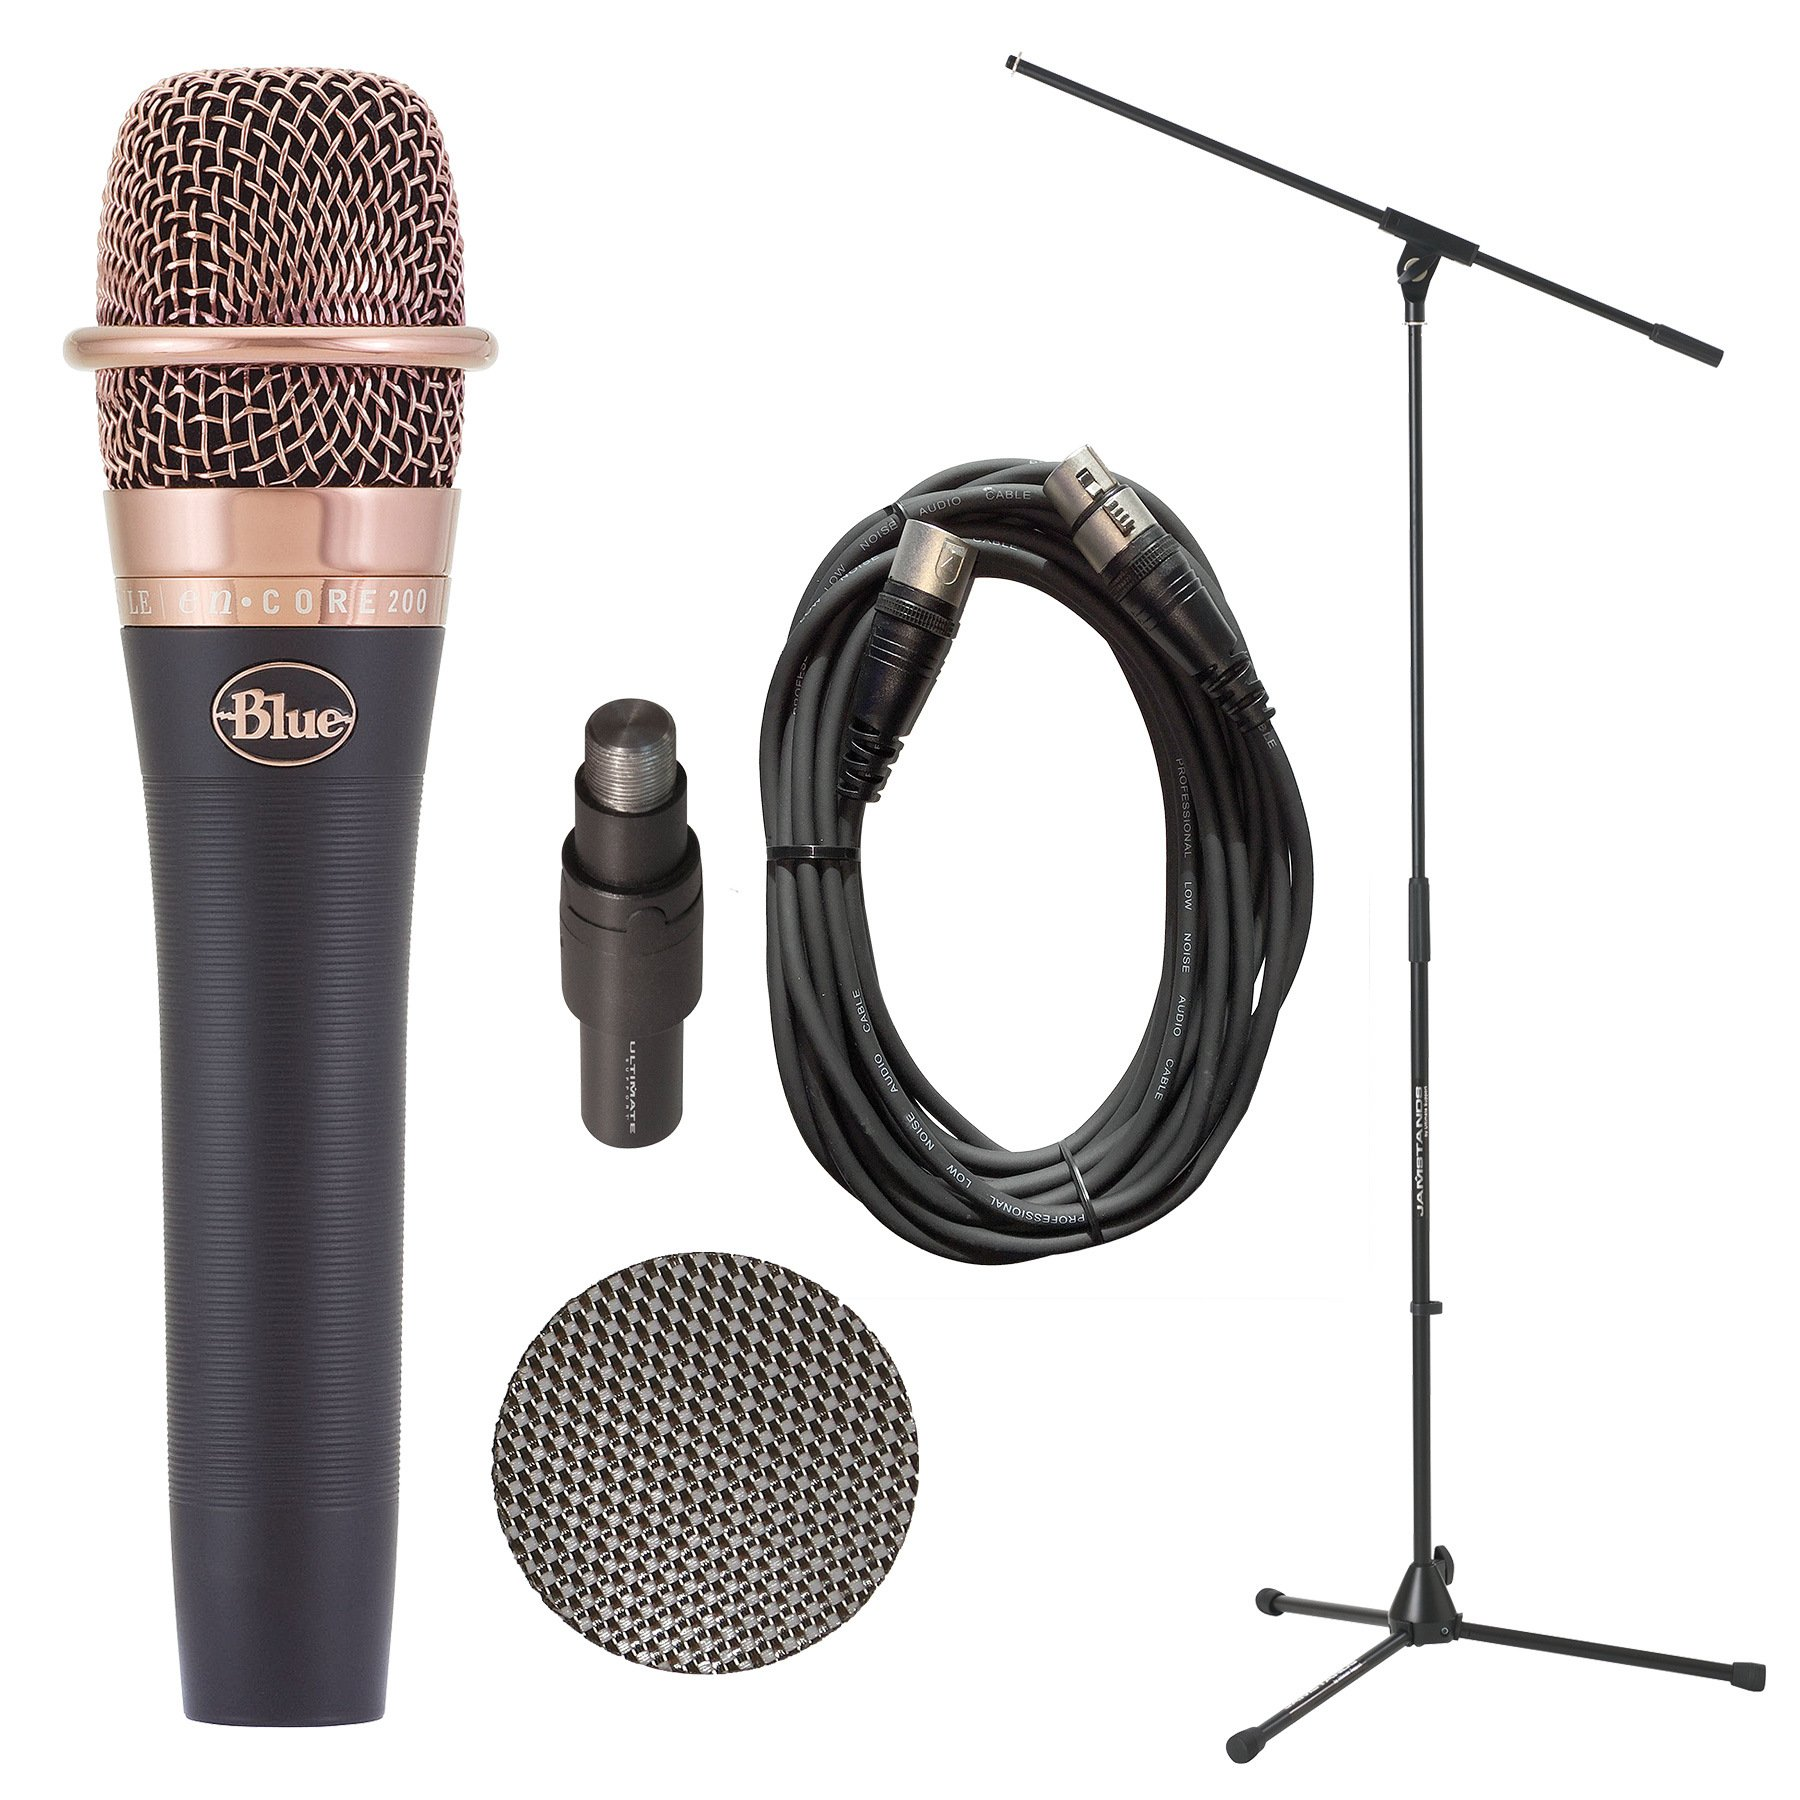 Microphone Kit with Accessories